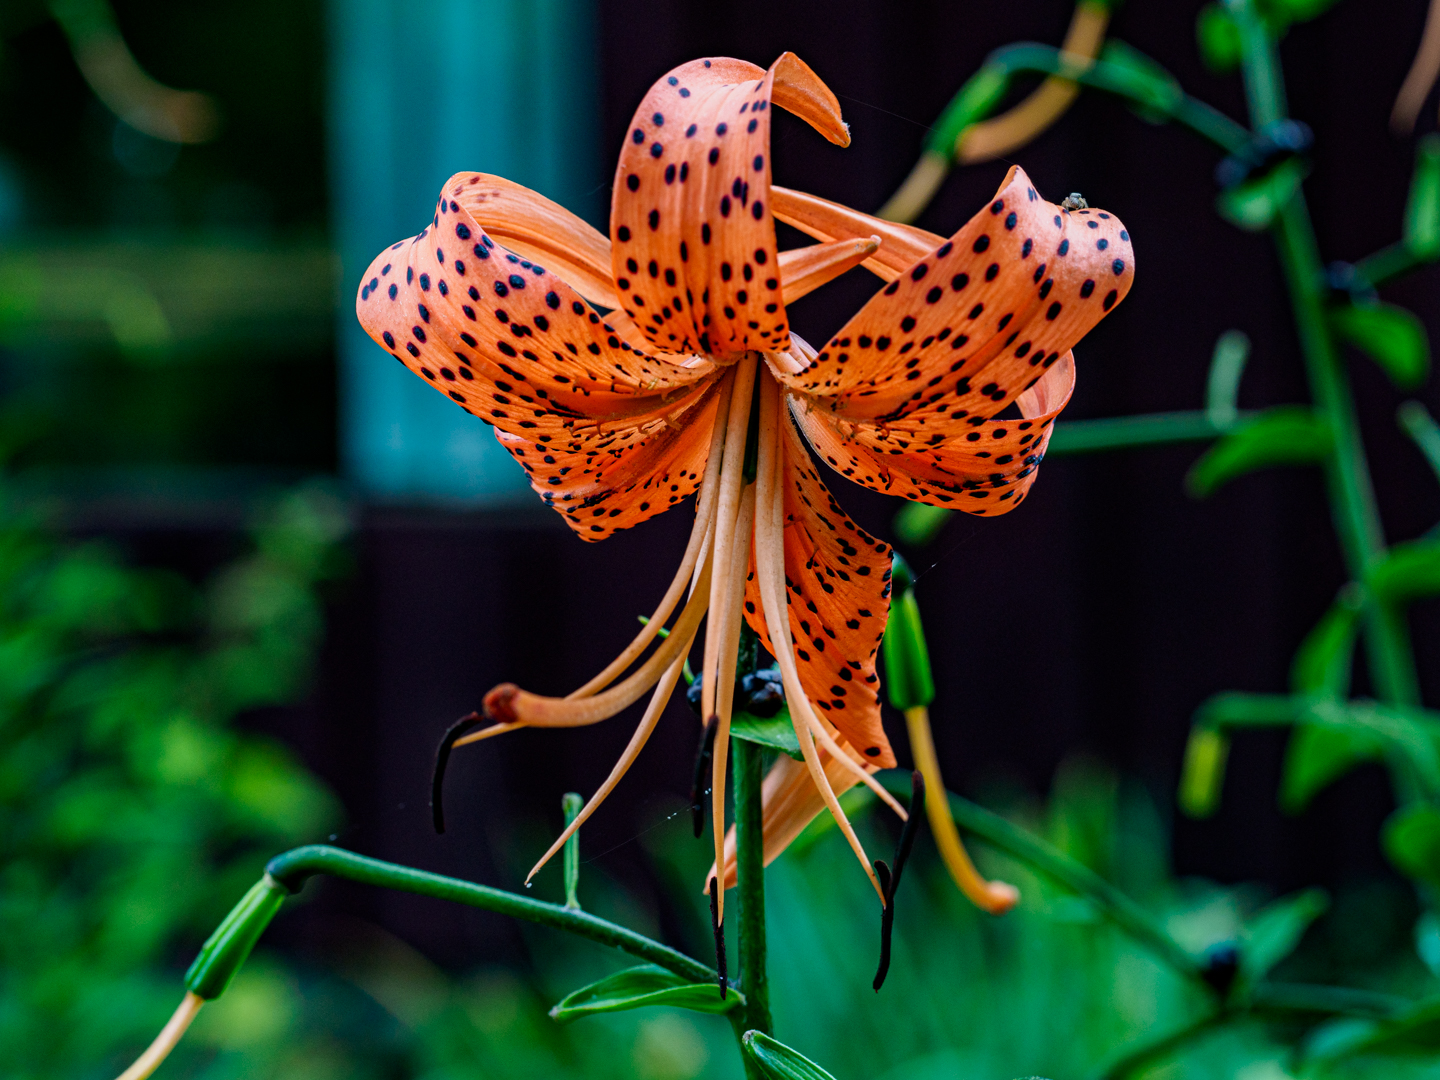 Organce Tiger lily flower